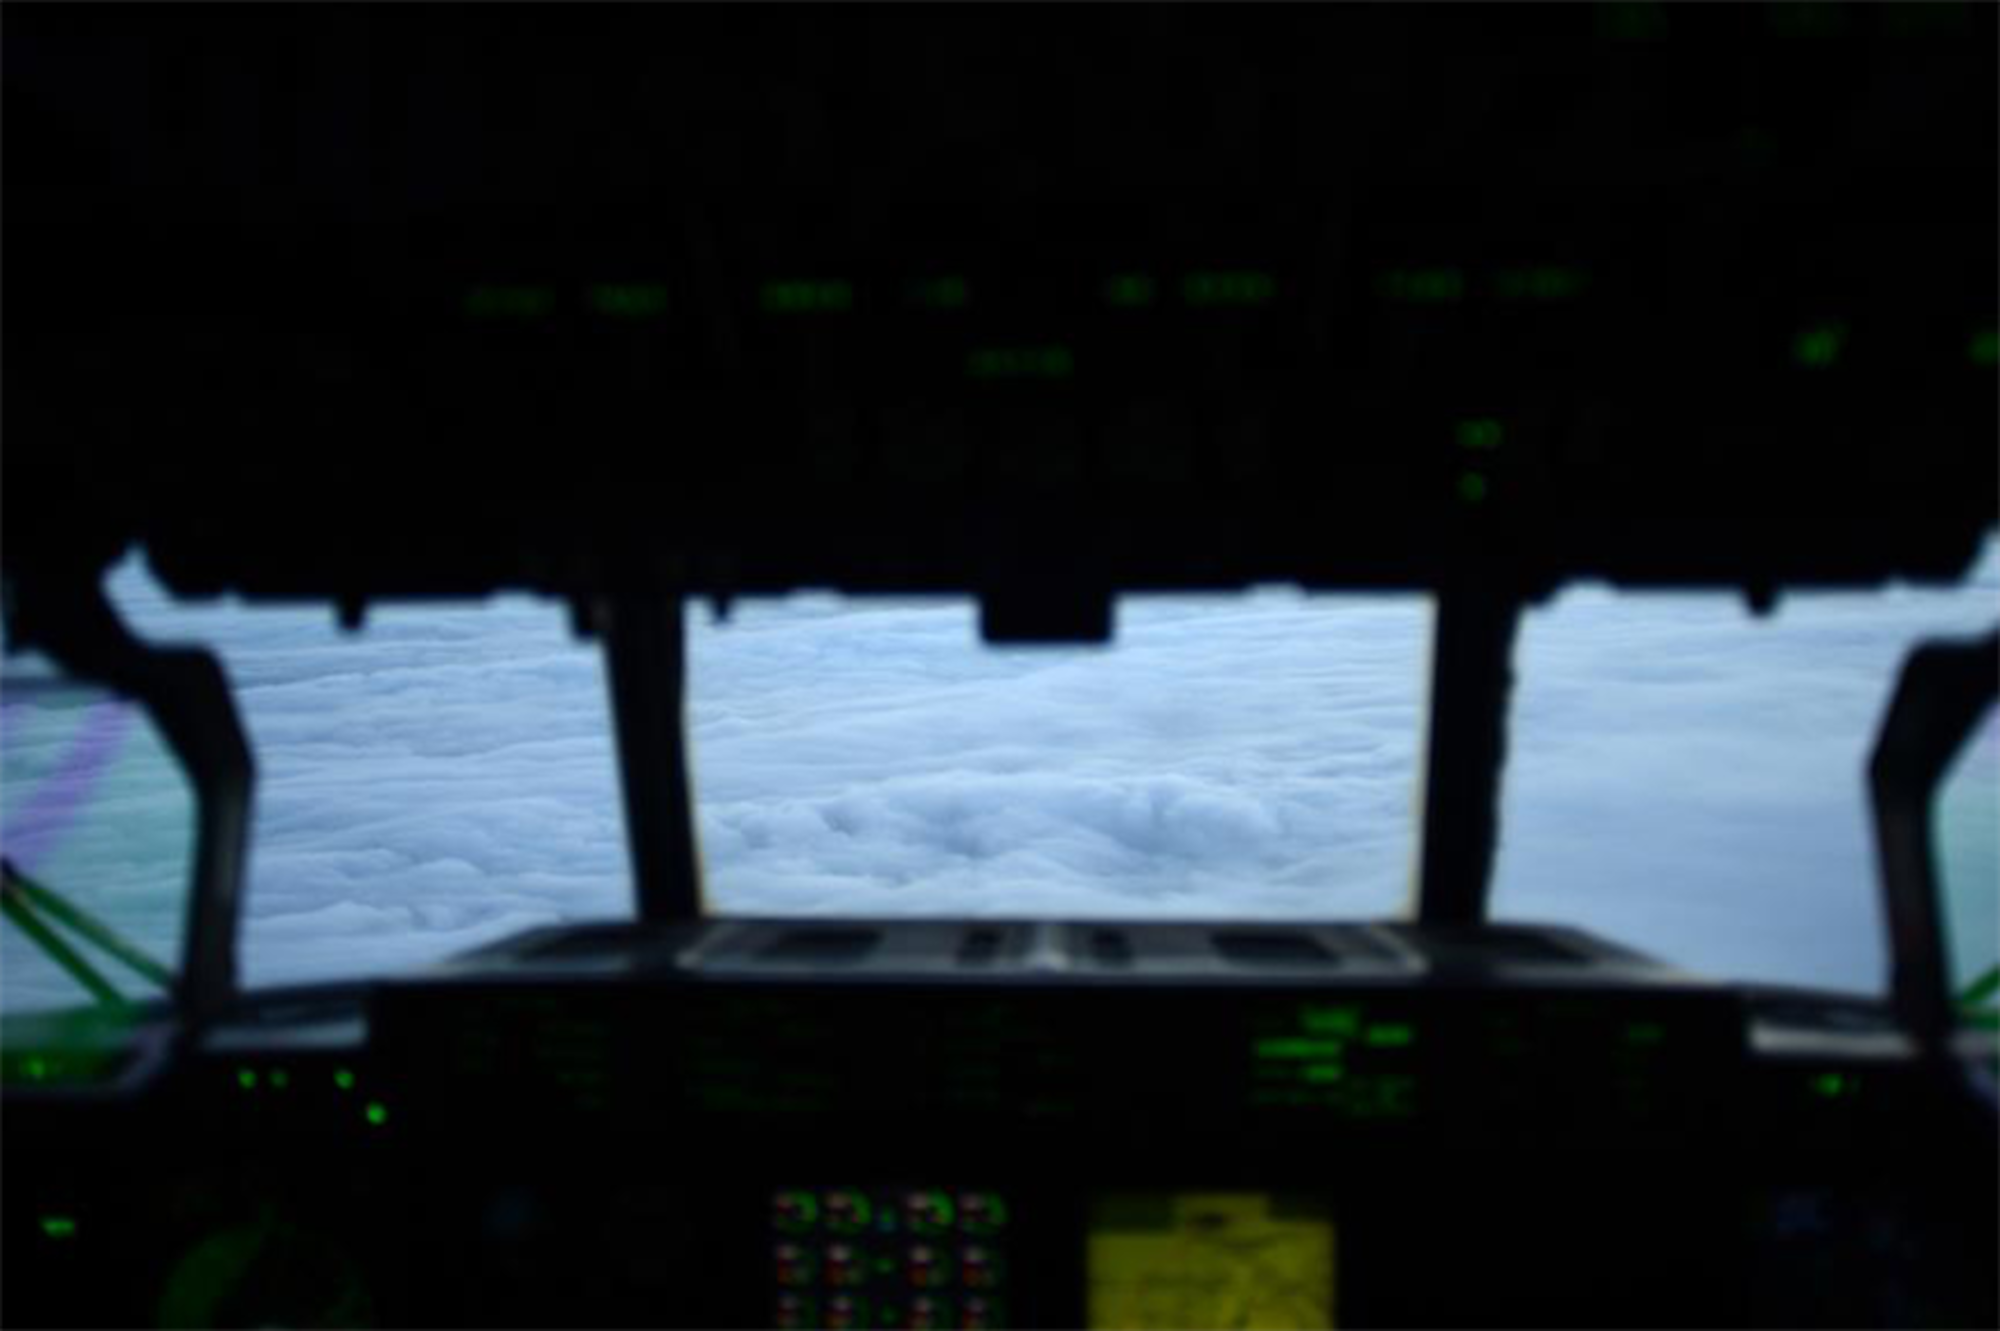 A WC-130J Hercules, from the 53rd Weather Reconnaissance Squadron, flies into Hurricane Sandy Oct. 29, 2012, over the Eastern coastline of the U.S. The 53rd WRS are sent to accomplish storm reconnaissance to gather real-time data on possible hurricanes and tropical disturbances. (U.S. Air Force photo/Staff Sgt. Jason Robertson)